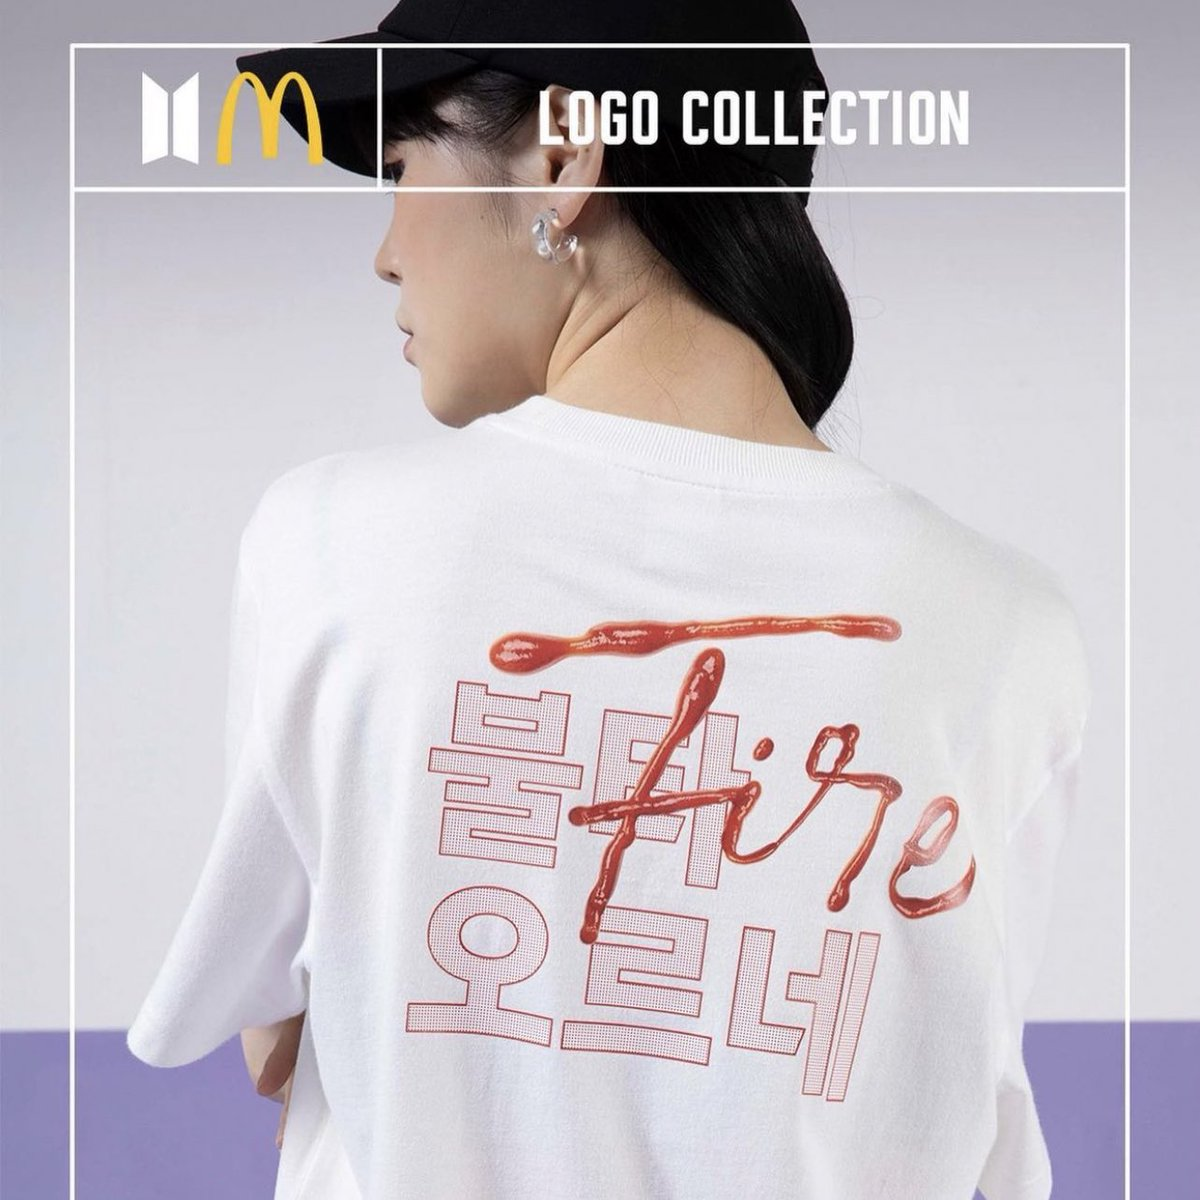 Bts Mcd Robe / Weverse Shop All Things For Fans - eng ...